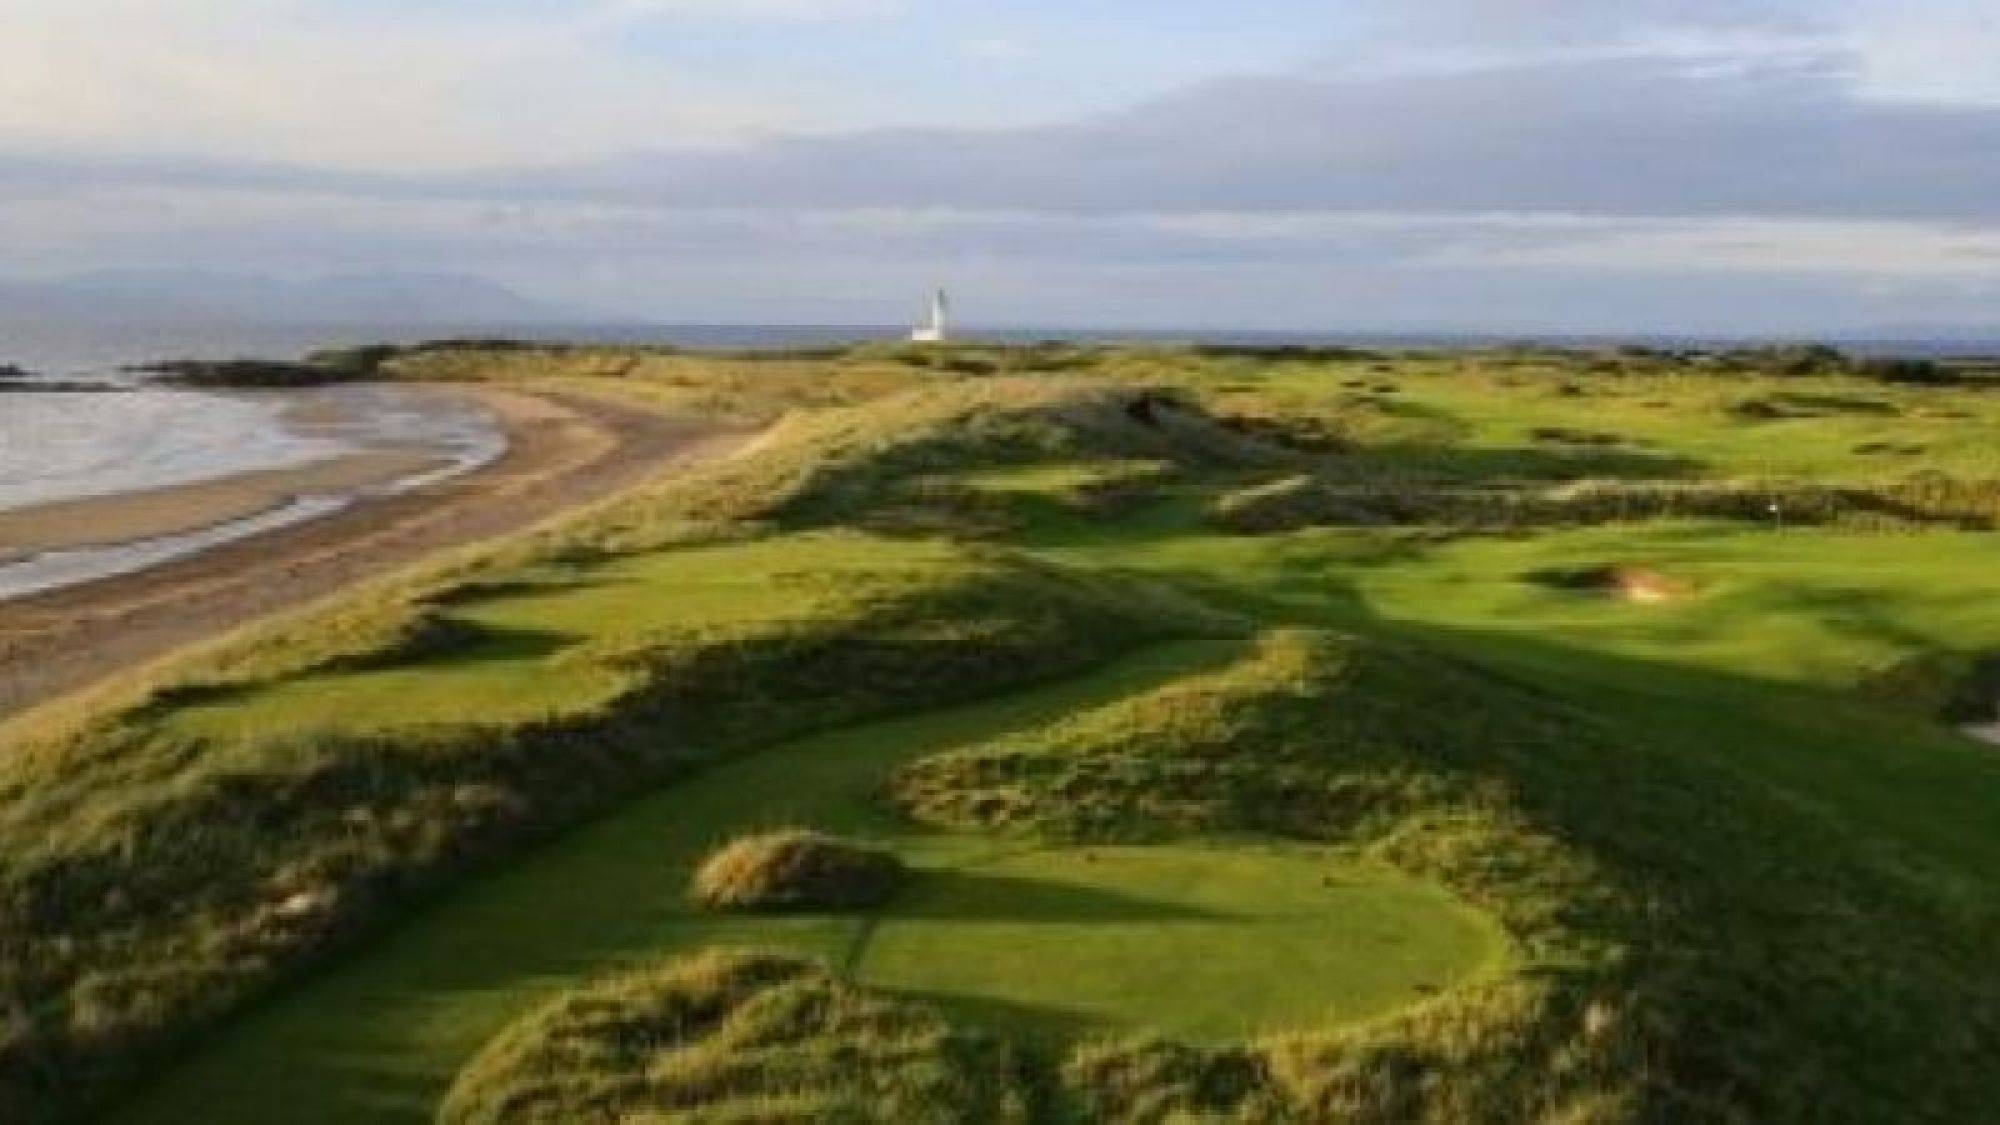 All The Trump Turnberry Golf's beautiful golf course within marvelous Scotland.